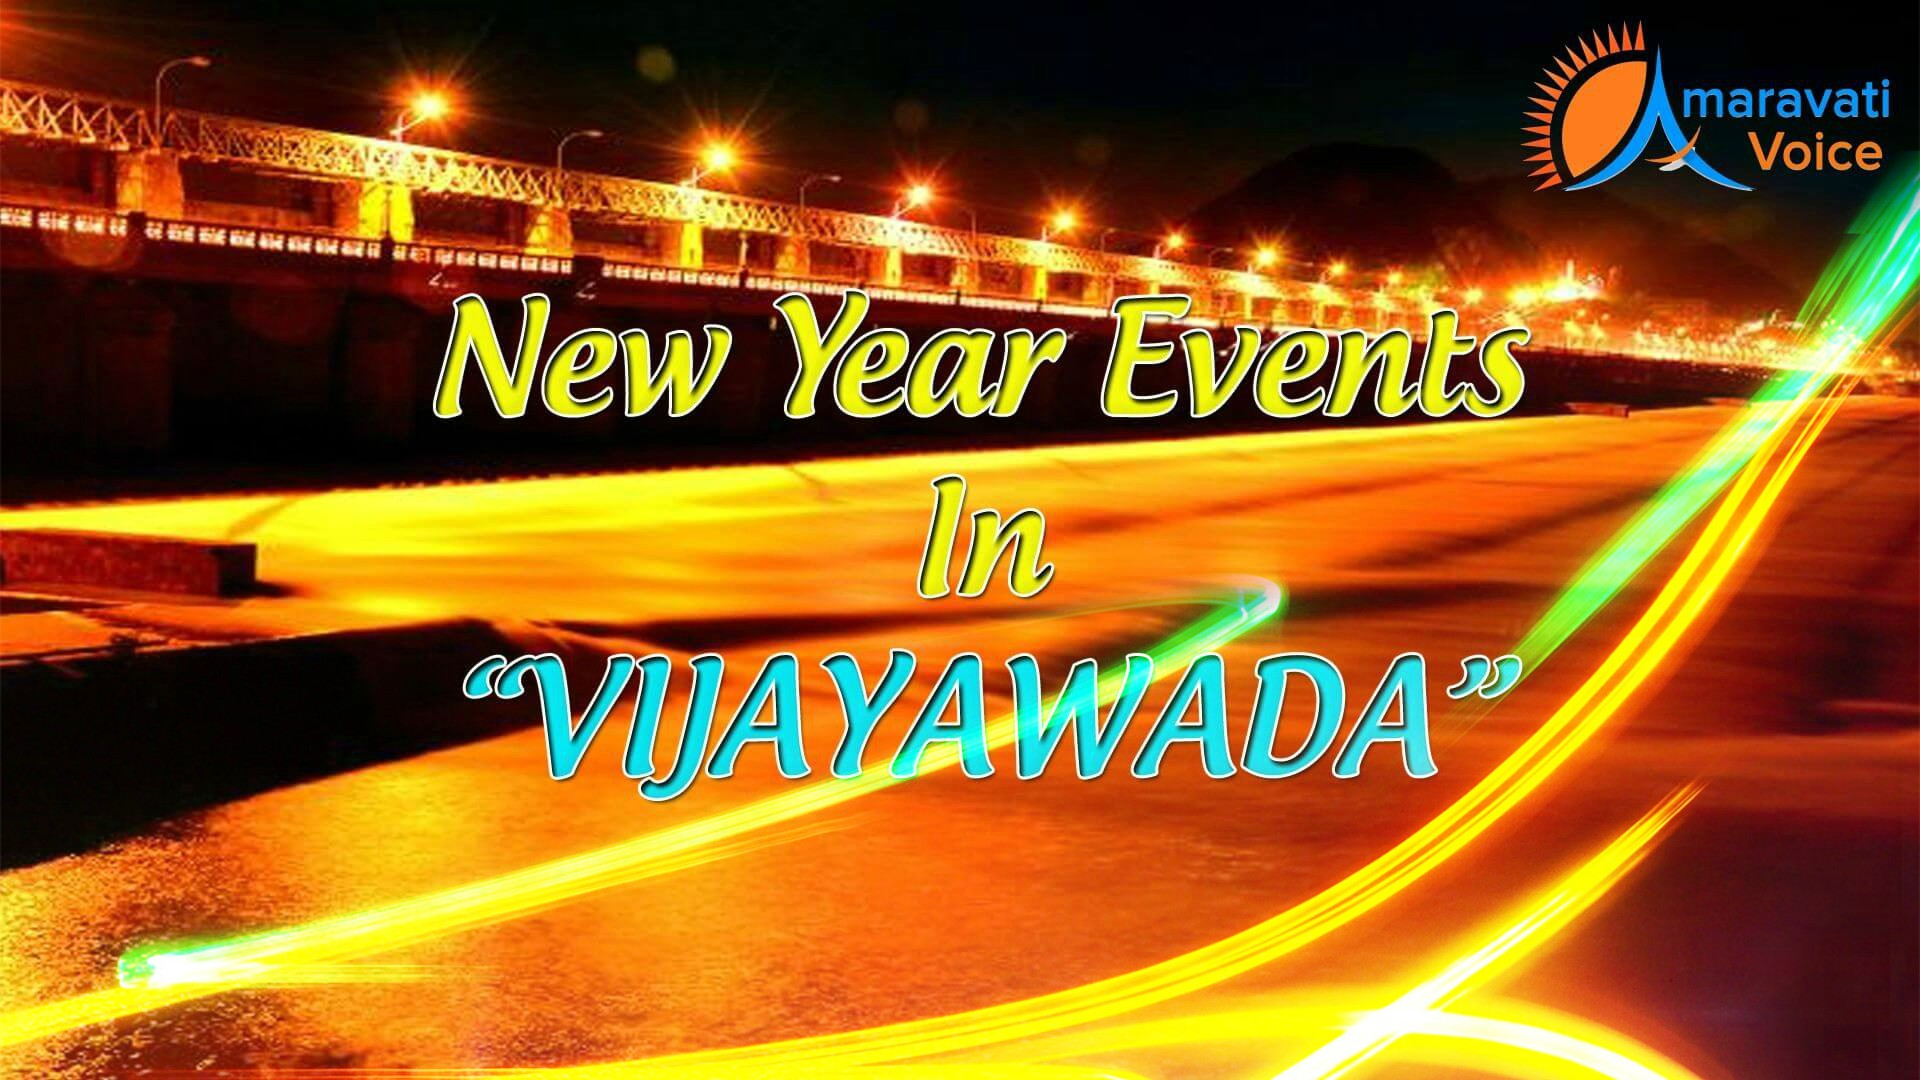 New Year Events in Vijayawada